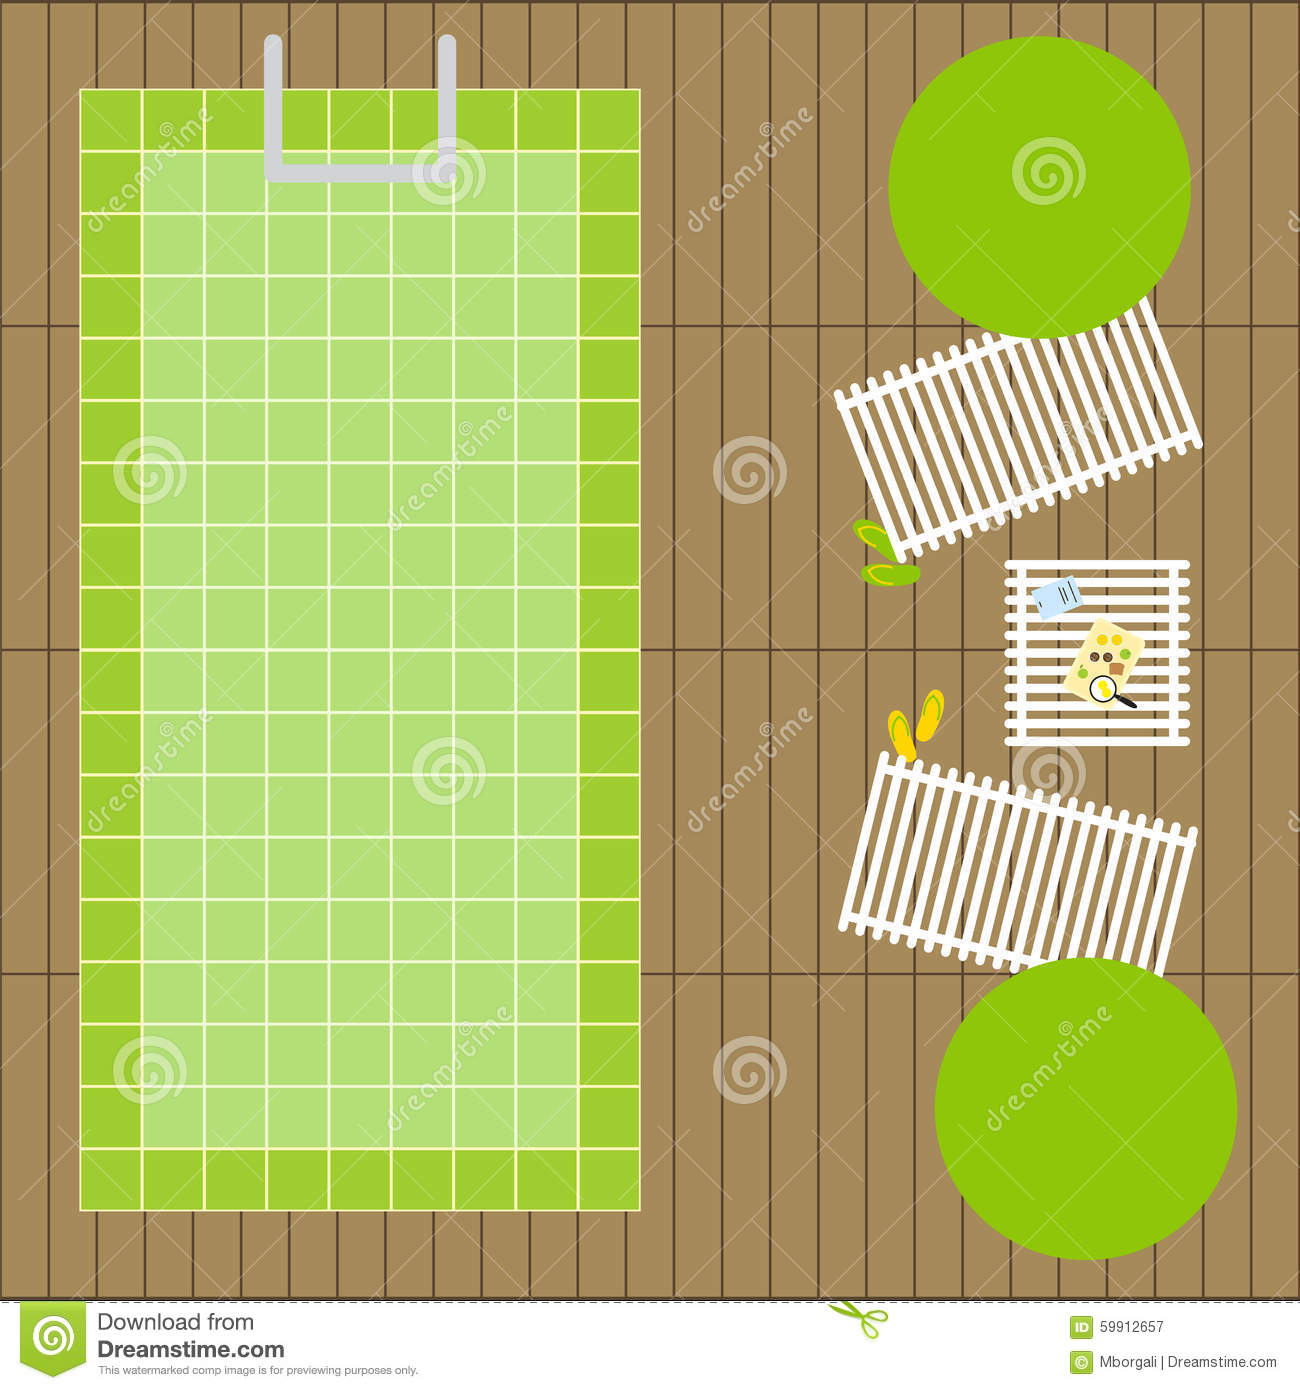 Pool chair top view - Swimming Pool Chair Top View Swimming Pool Chair Top View Swimming Pool Top View Download